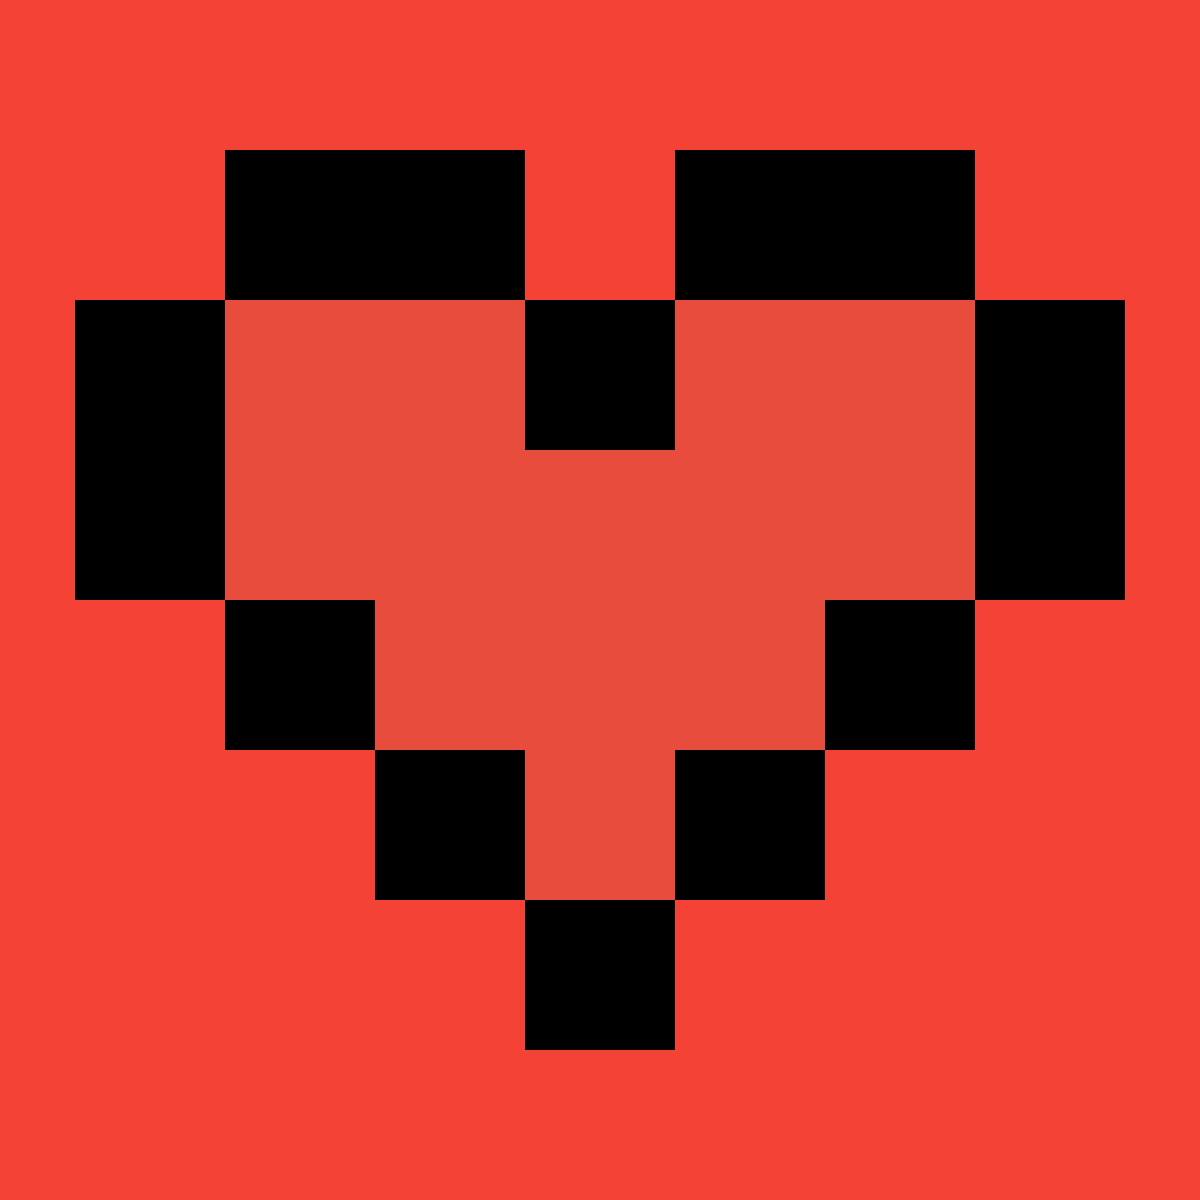 a red heart for my new bae charli by 1009022